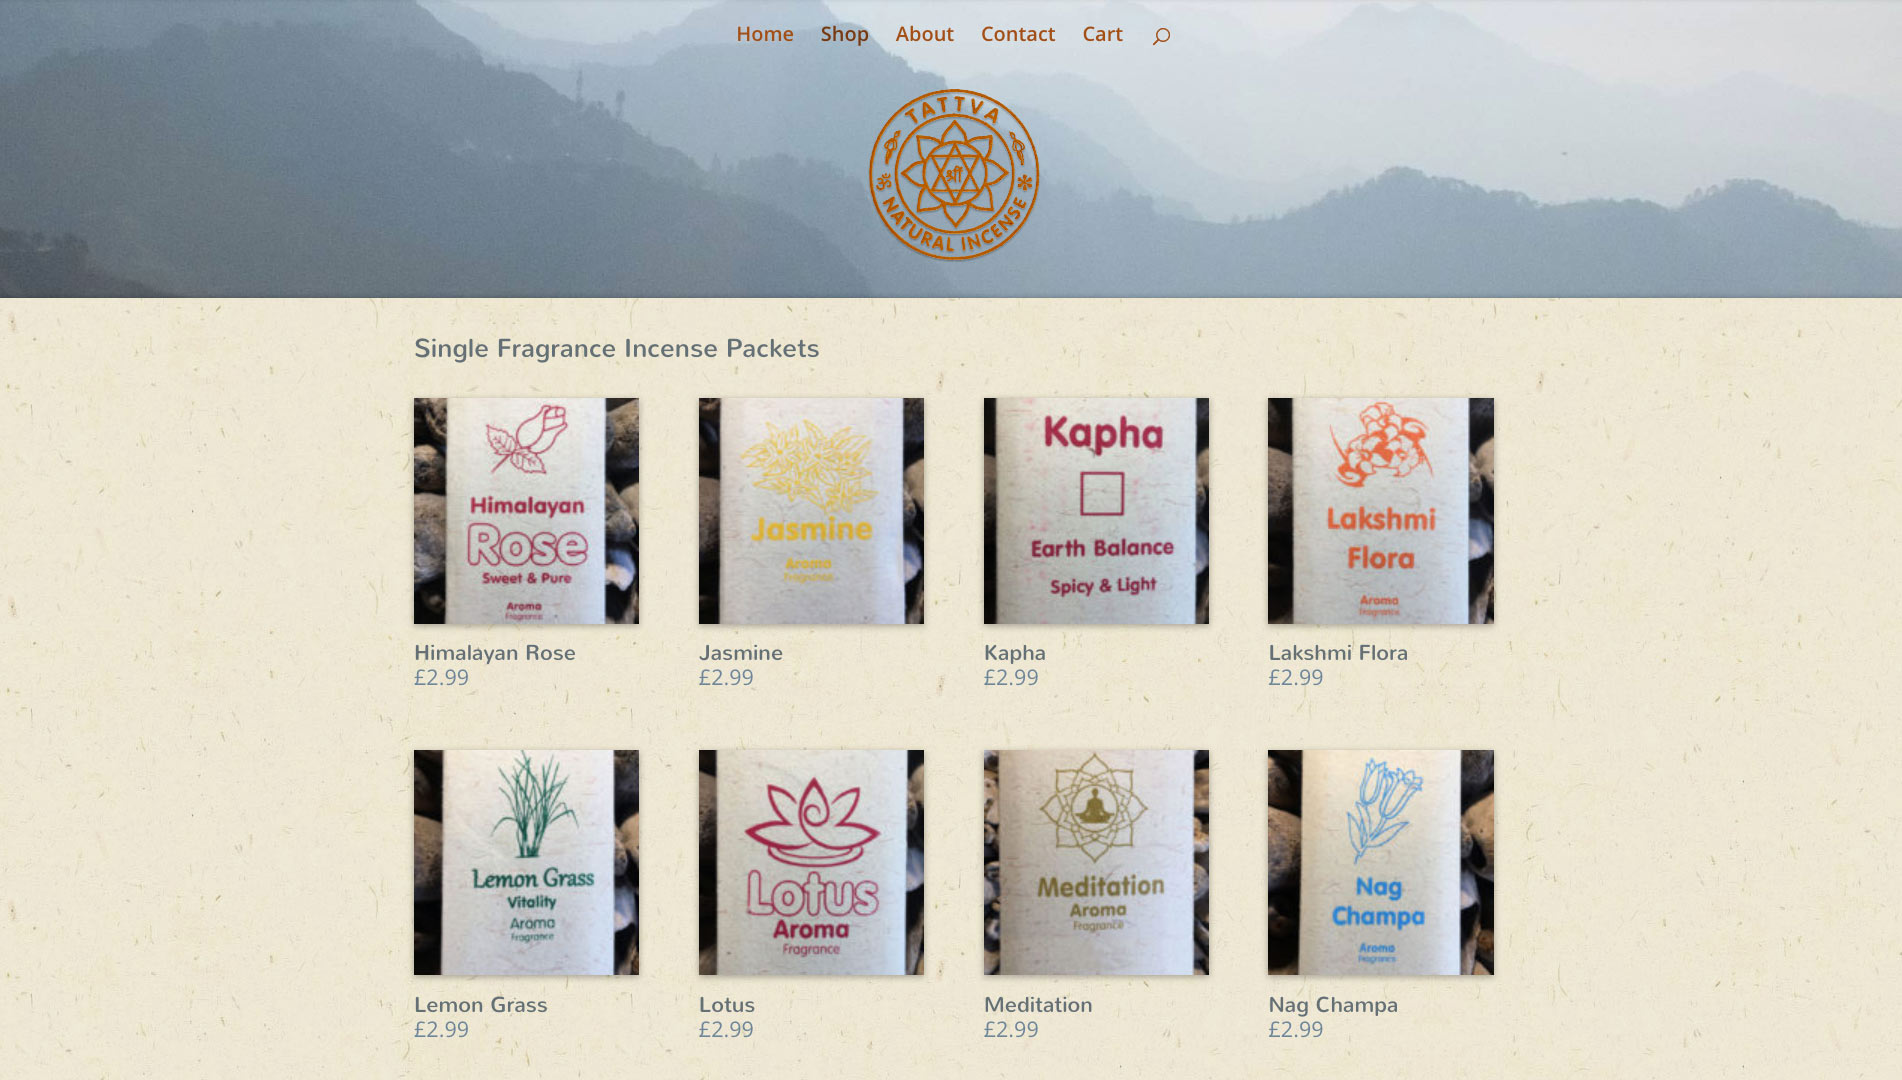 Tattva Incense shop page